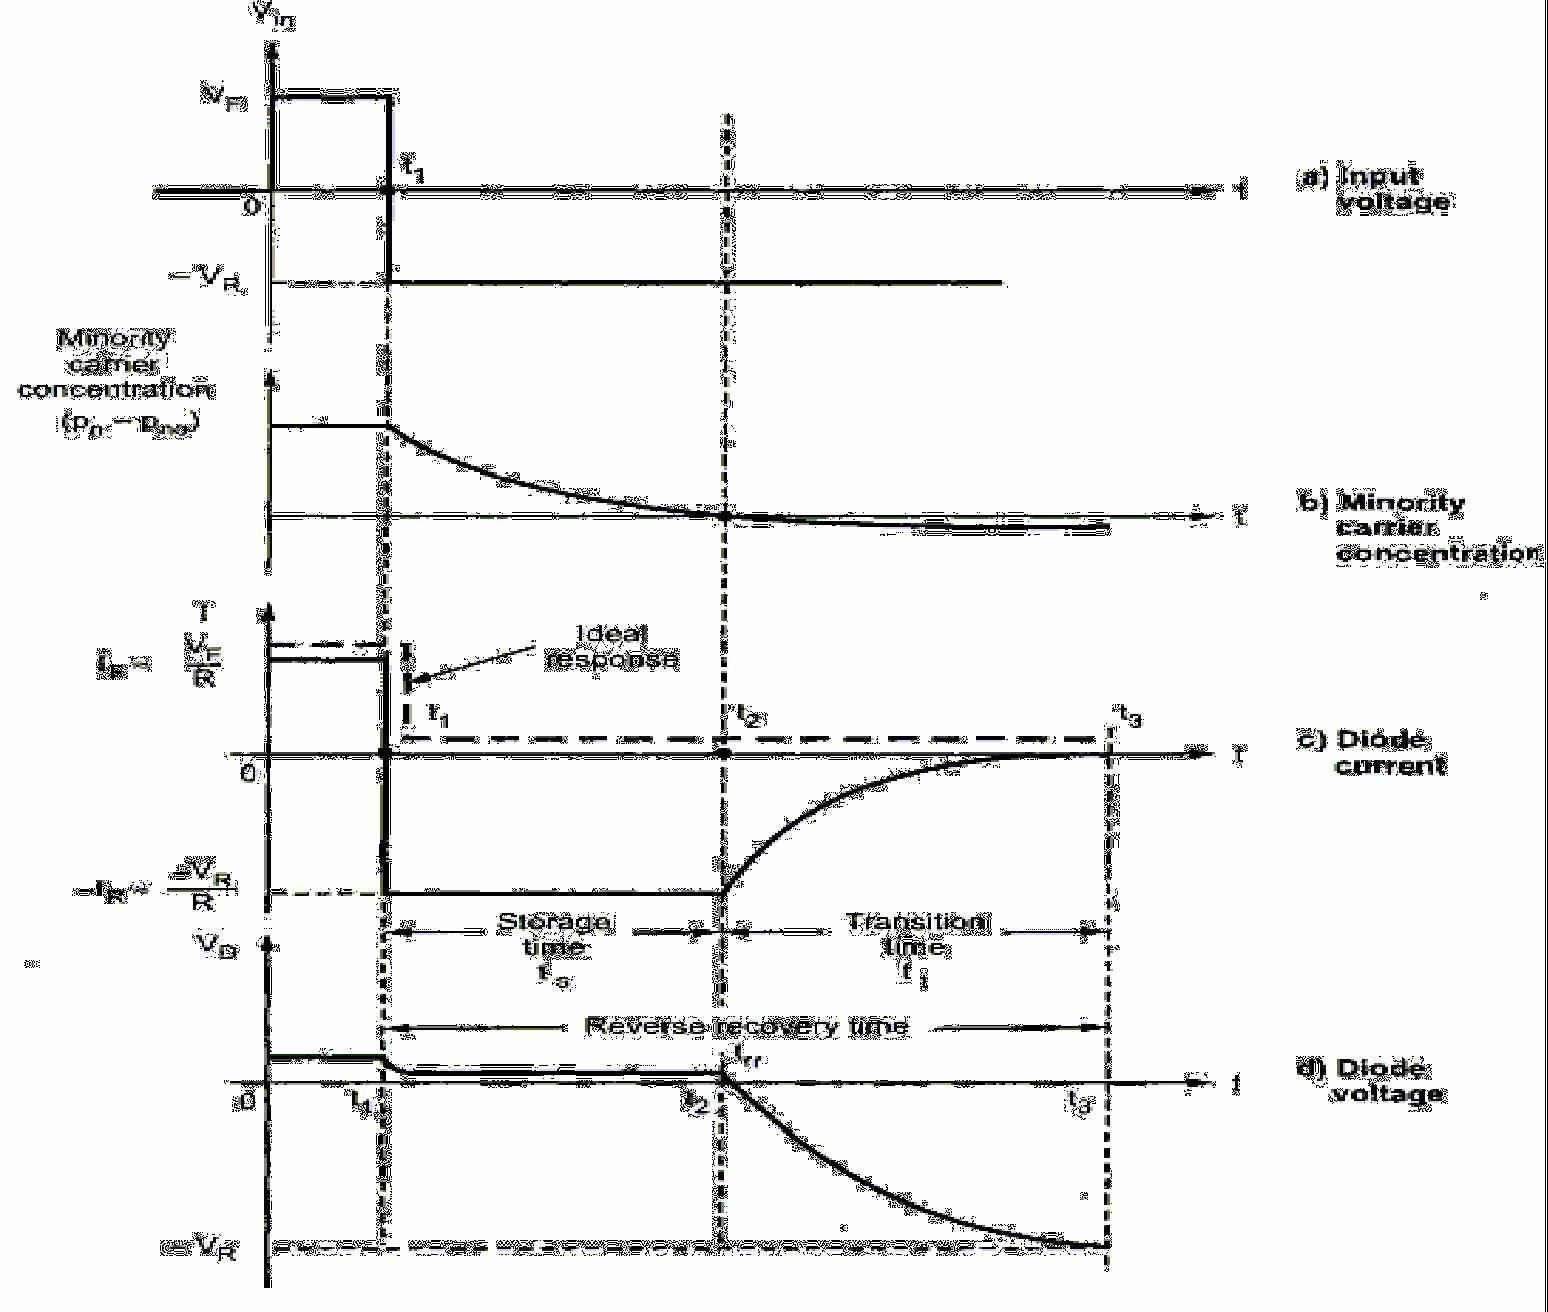 medium resolution of the reverse recovery time depends on the rc time constant where c is a transition capacitance of a diode thus the transition capacitance plays an important